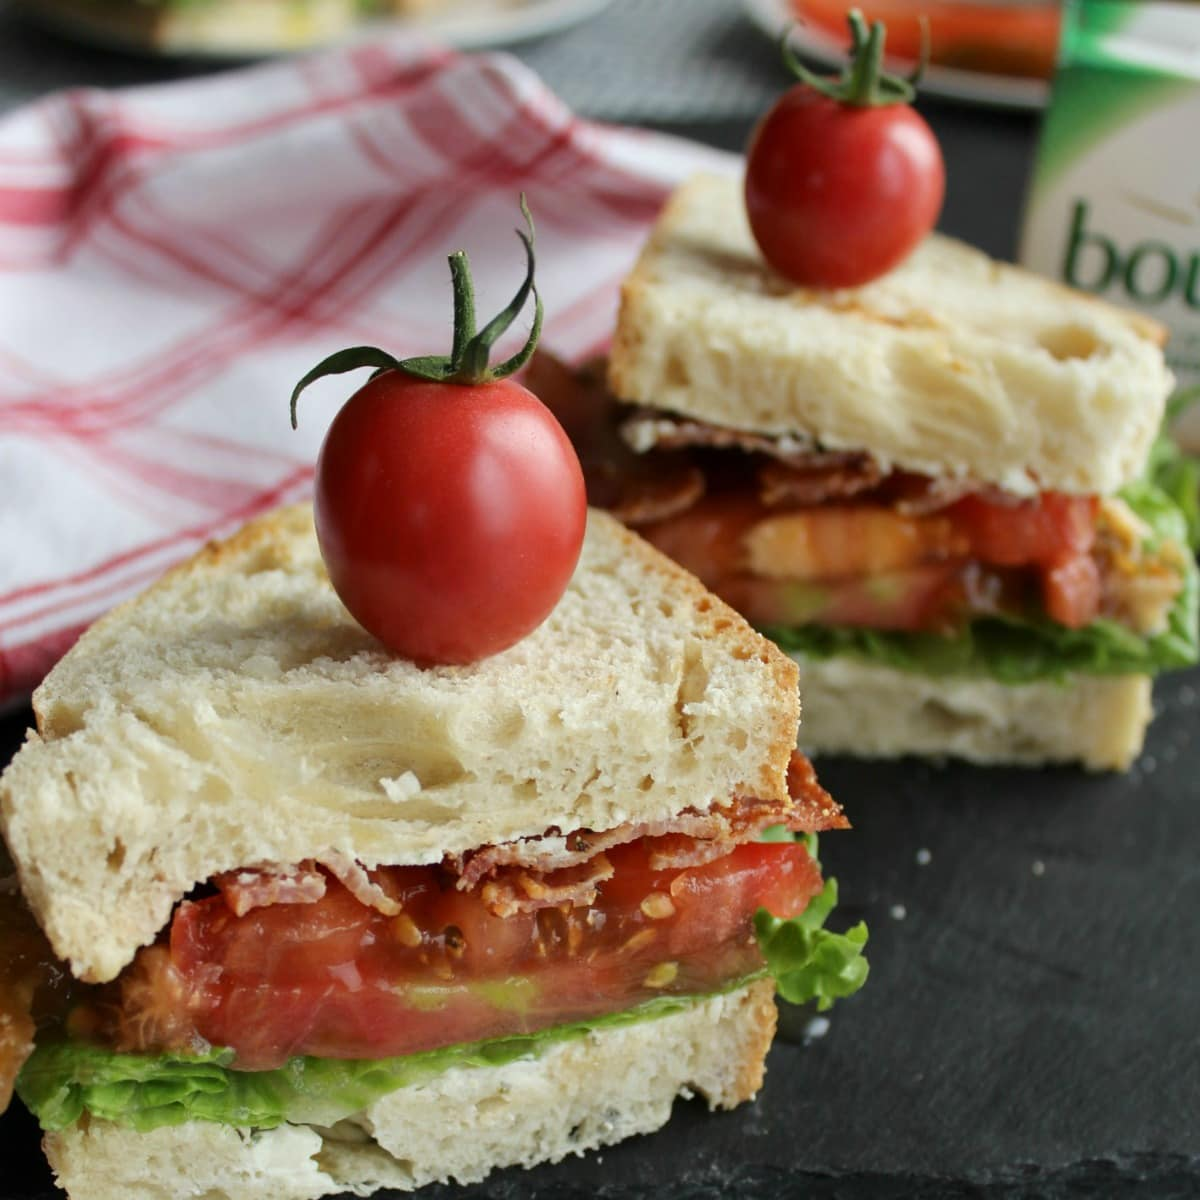 Take advantage of the season's best, flavorful tomatoes to make the best BLT. And there are two variations to try!